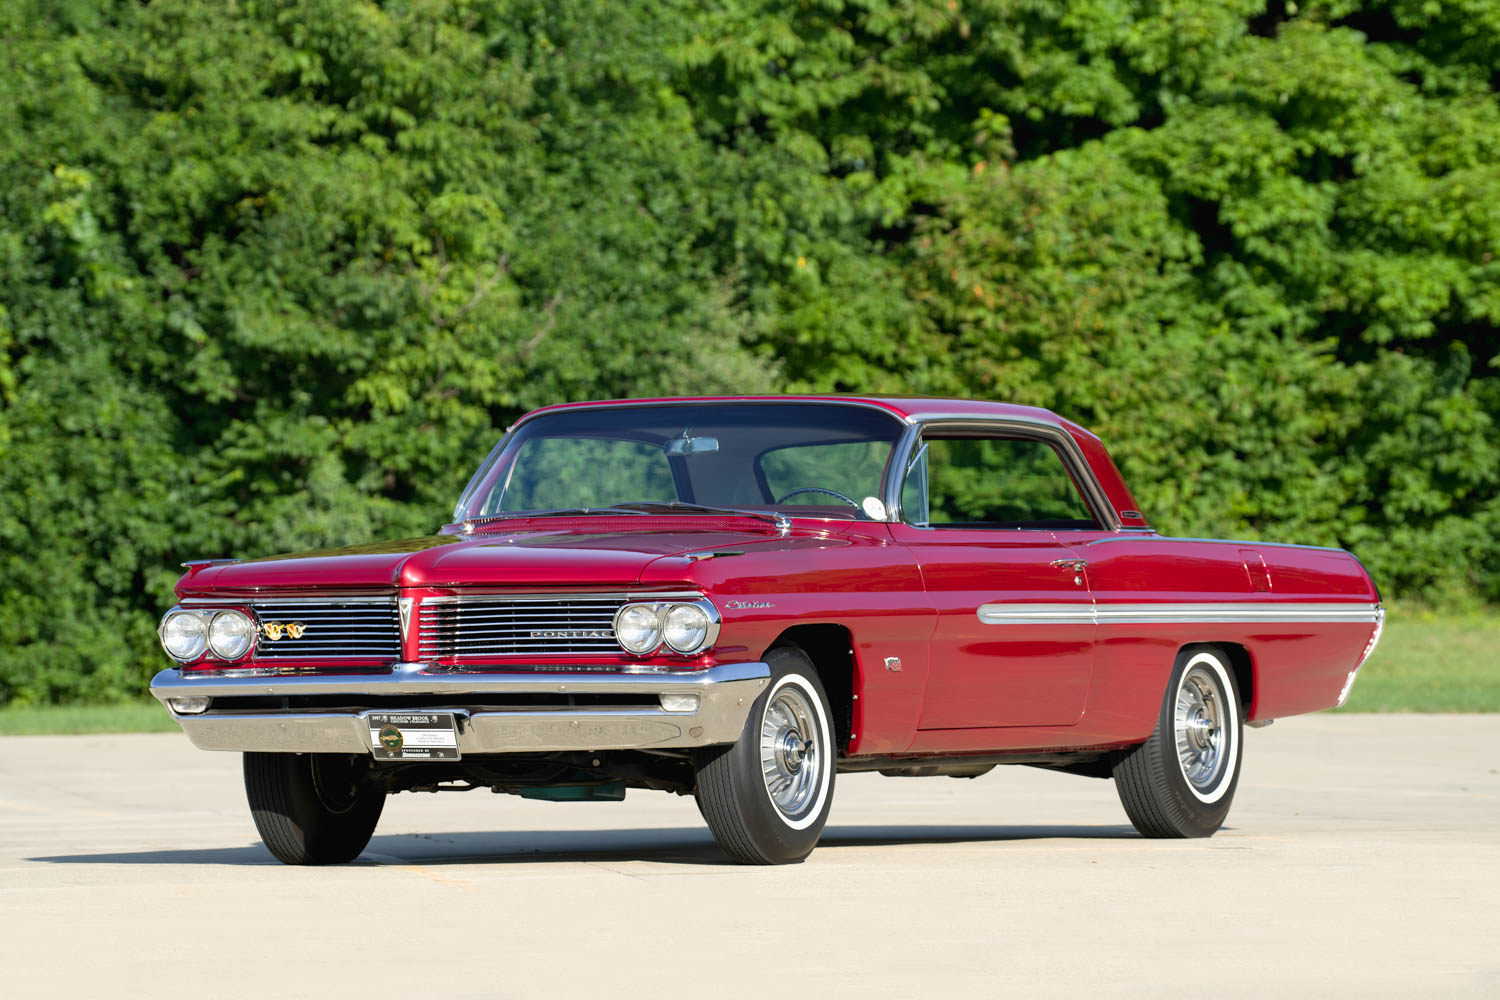 Finished in Belmar Red, the Koss '62 Pontiac Catalina is a striking automobile. The painted body cove identifies it as a Royal Bobcat.